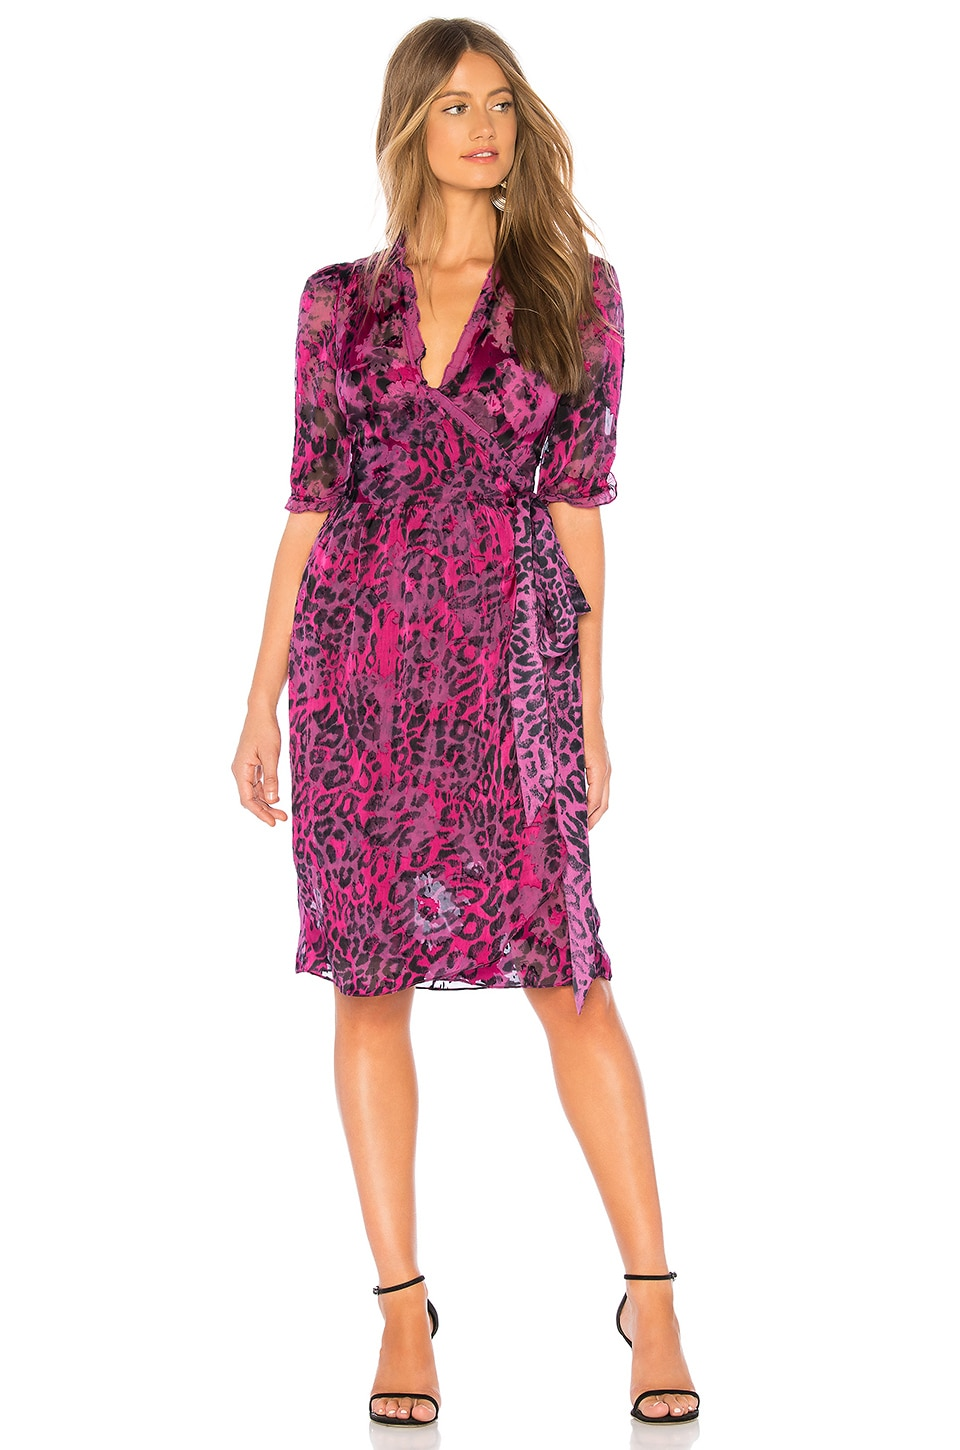 AMANDA BOND Anya Dress in Fuchsia